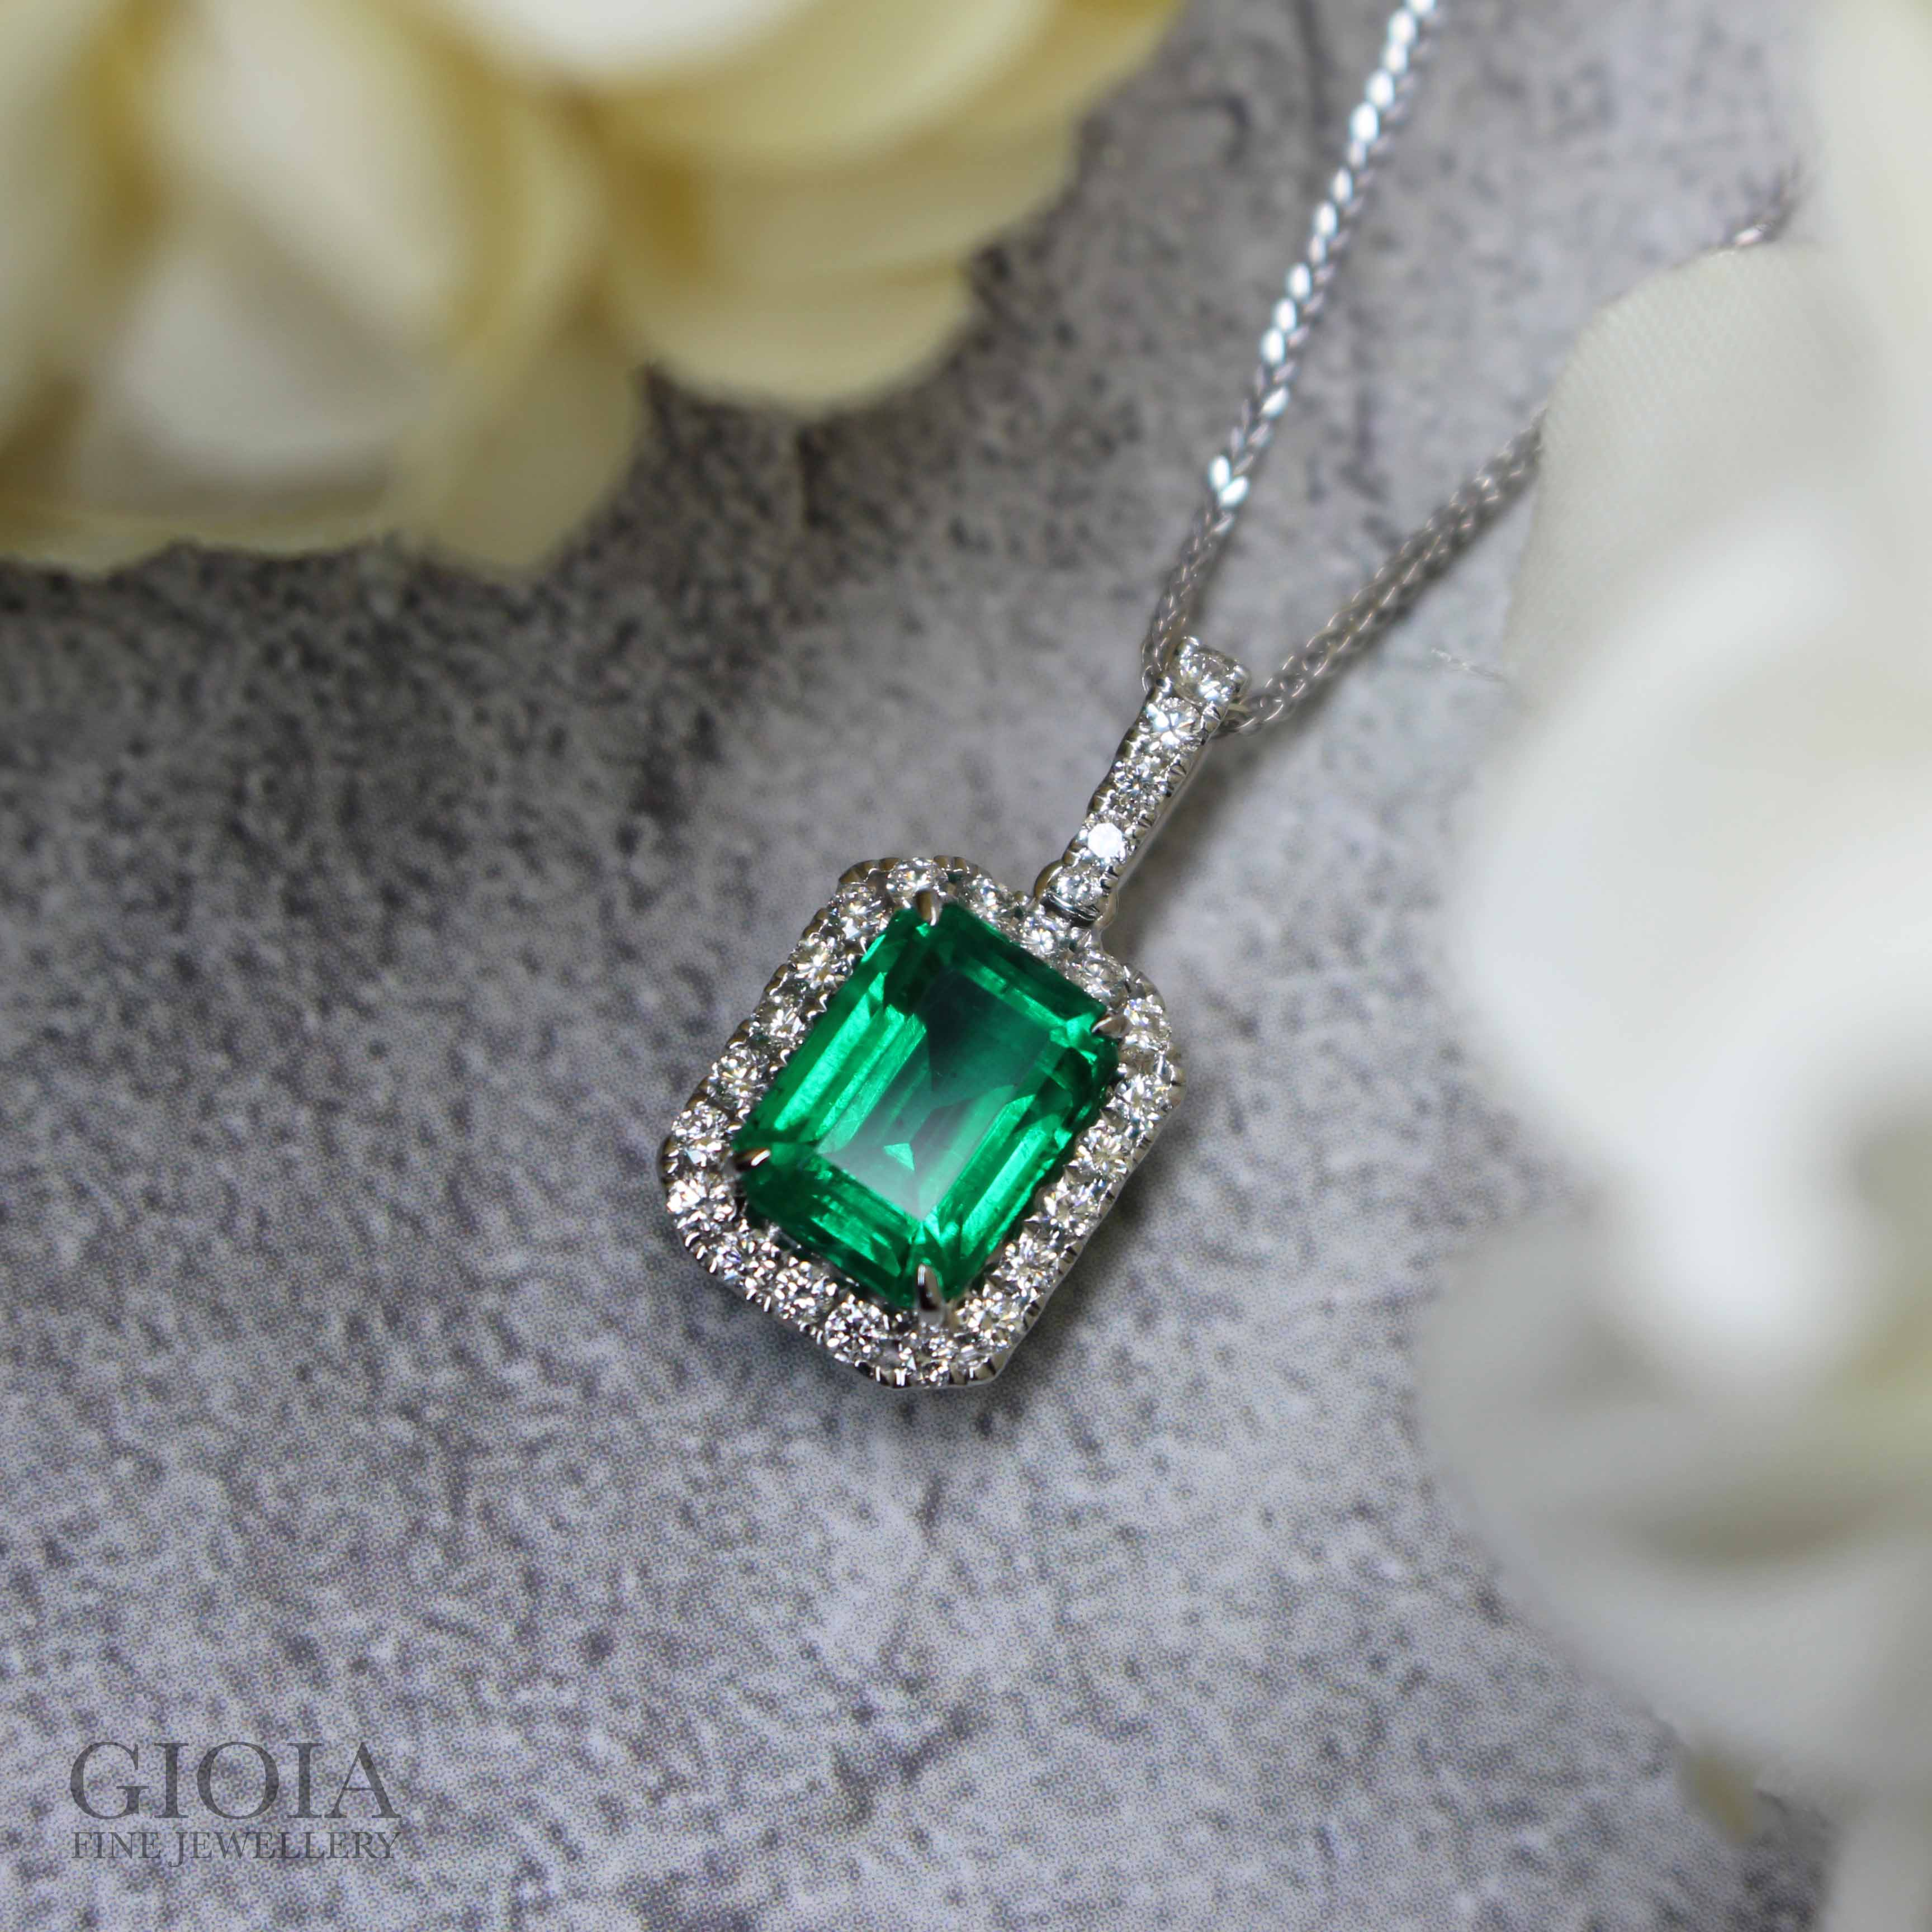 Untreated No Oil Emerald Gemstone Pendant Customised with Halo Round Diamonds - Customised Fine Jewellery at GIOIA Fine Jewellery, with quality vivid no oil (non treated) emerald gemstone | Local Singapore Private Jewellery in bespoke customised Jewellery